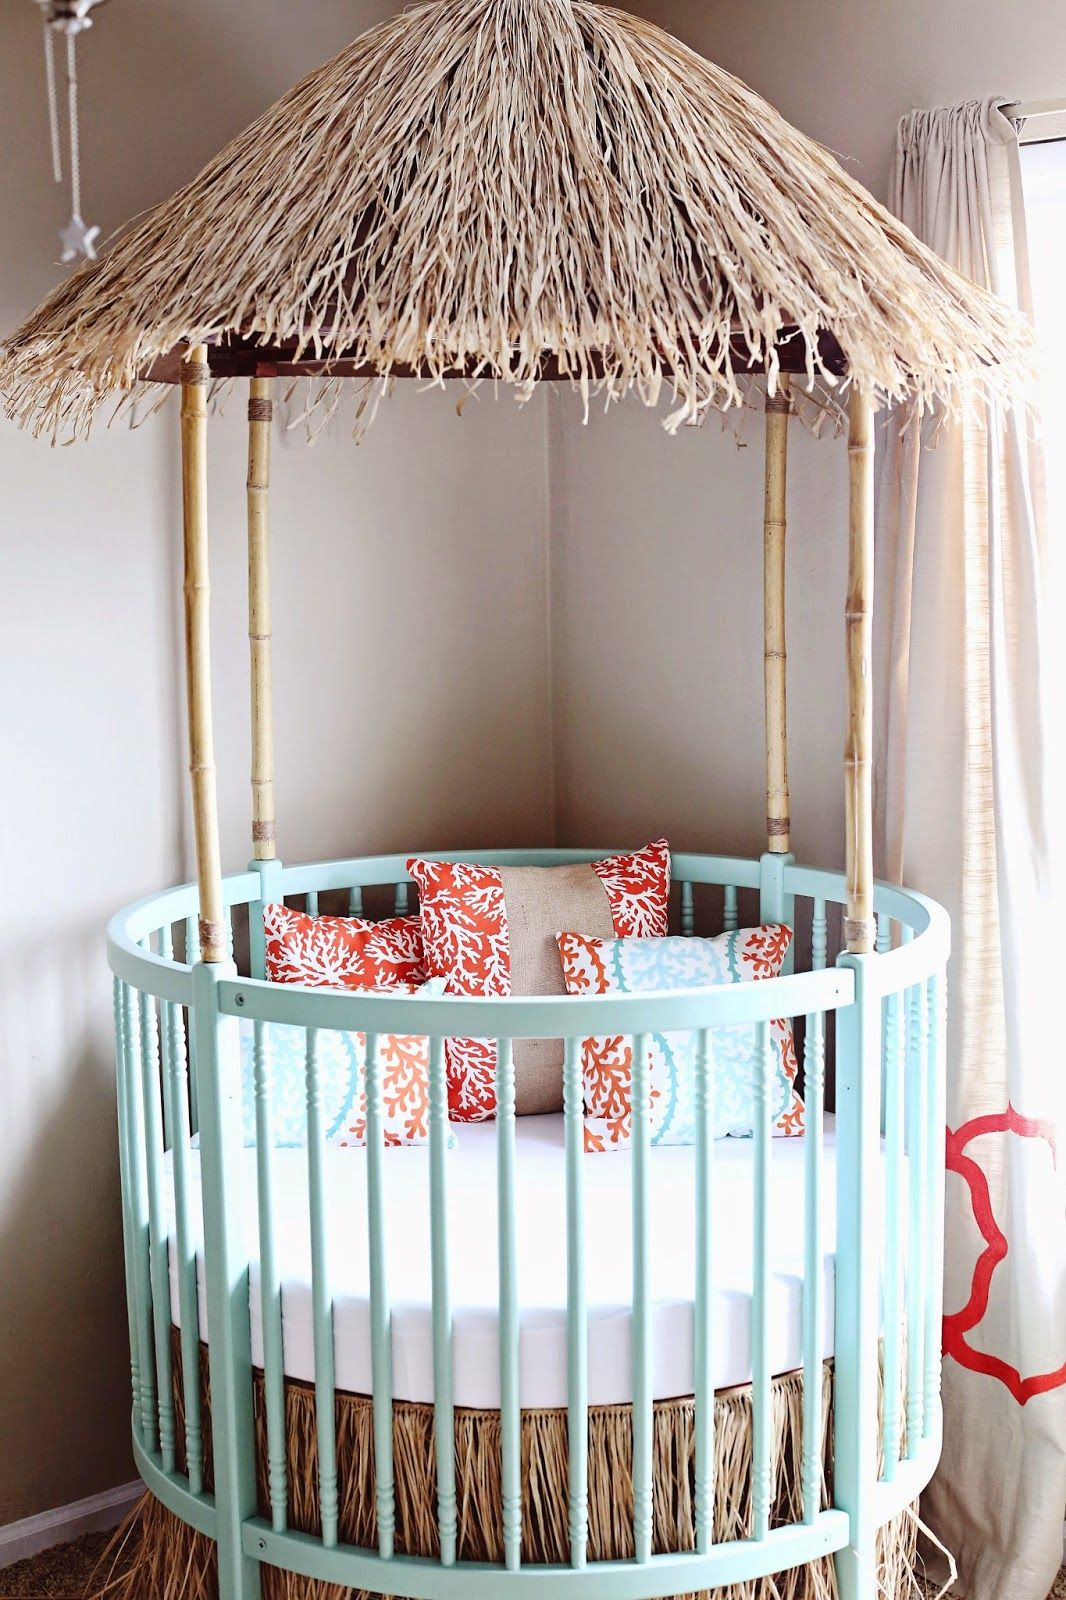 Awesome Tiki Hut Crib With Mint Green And Orange Accents